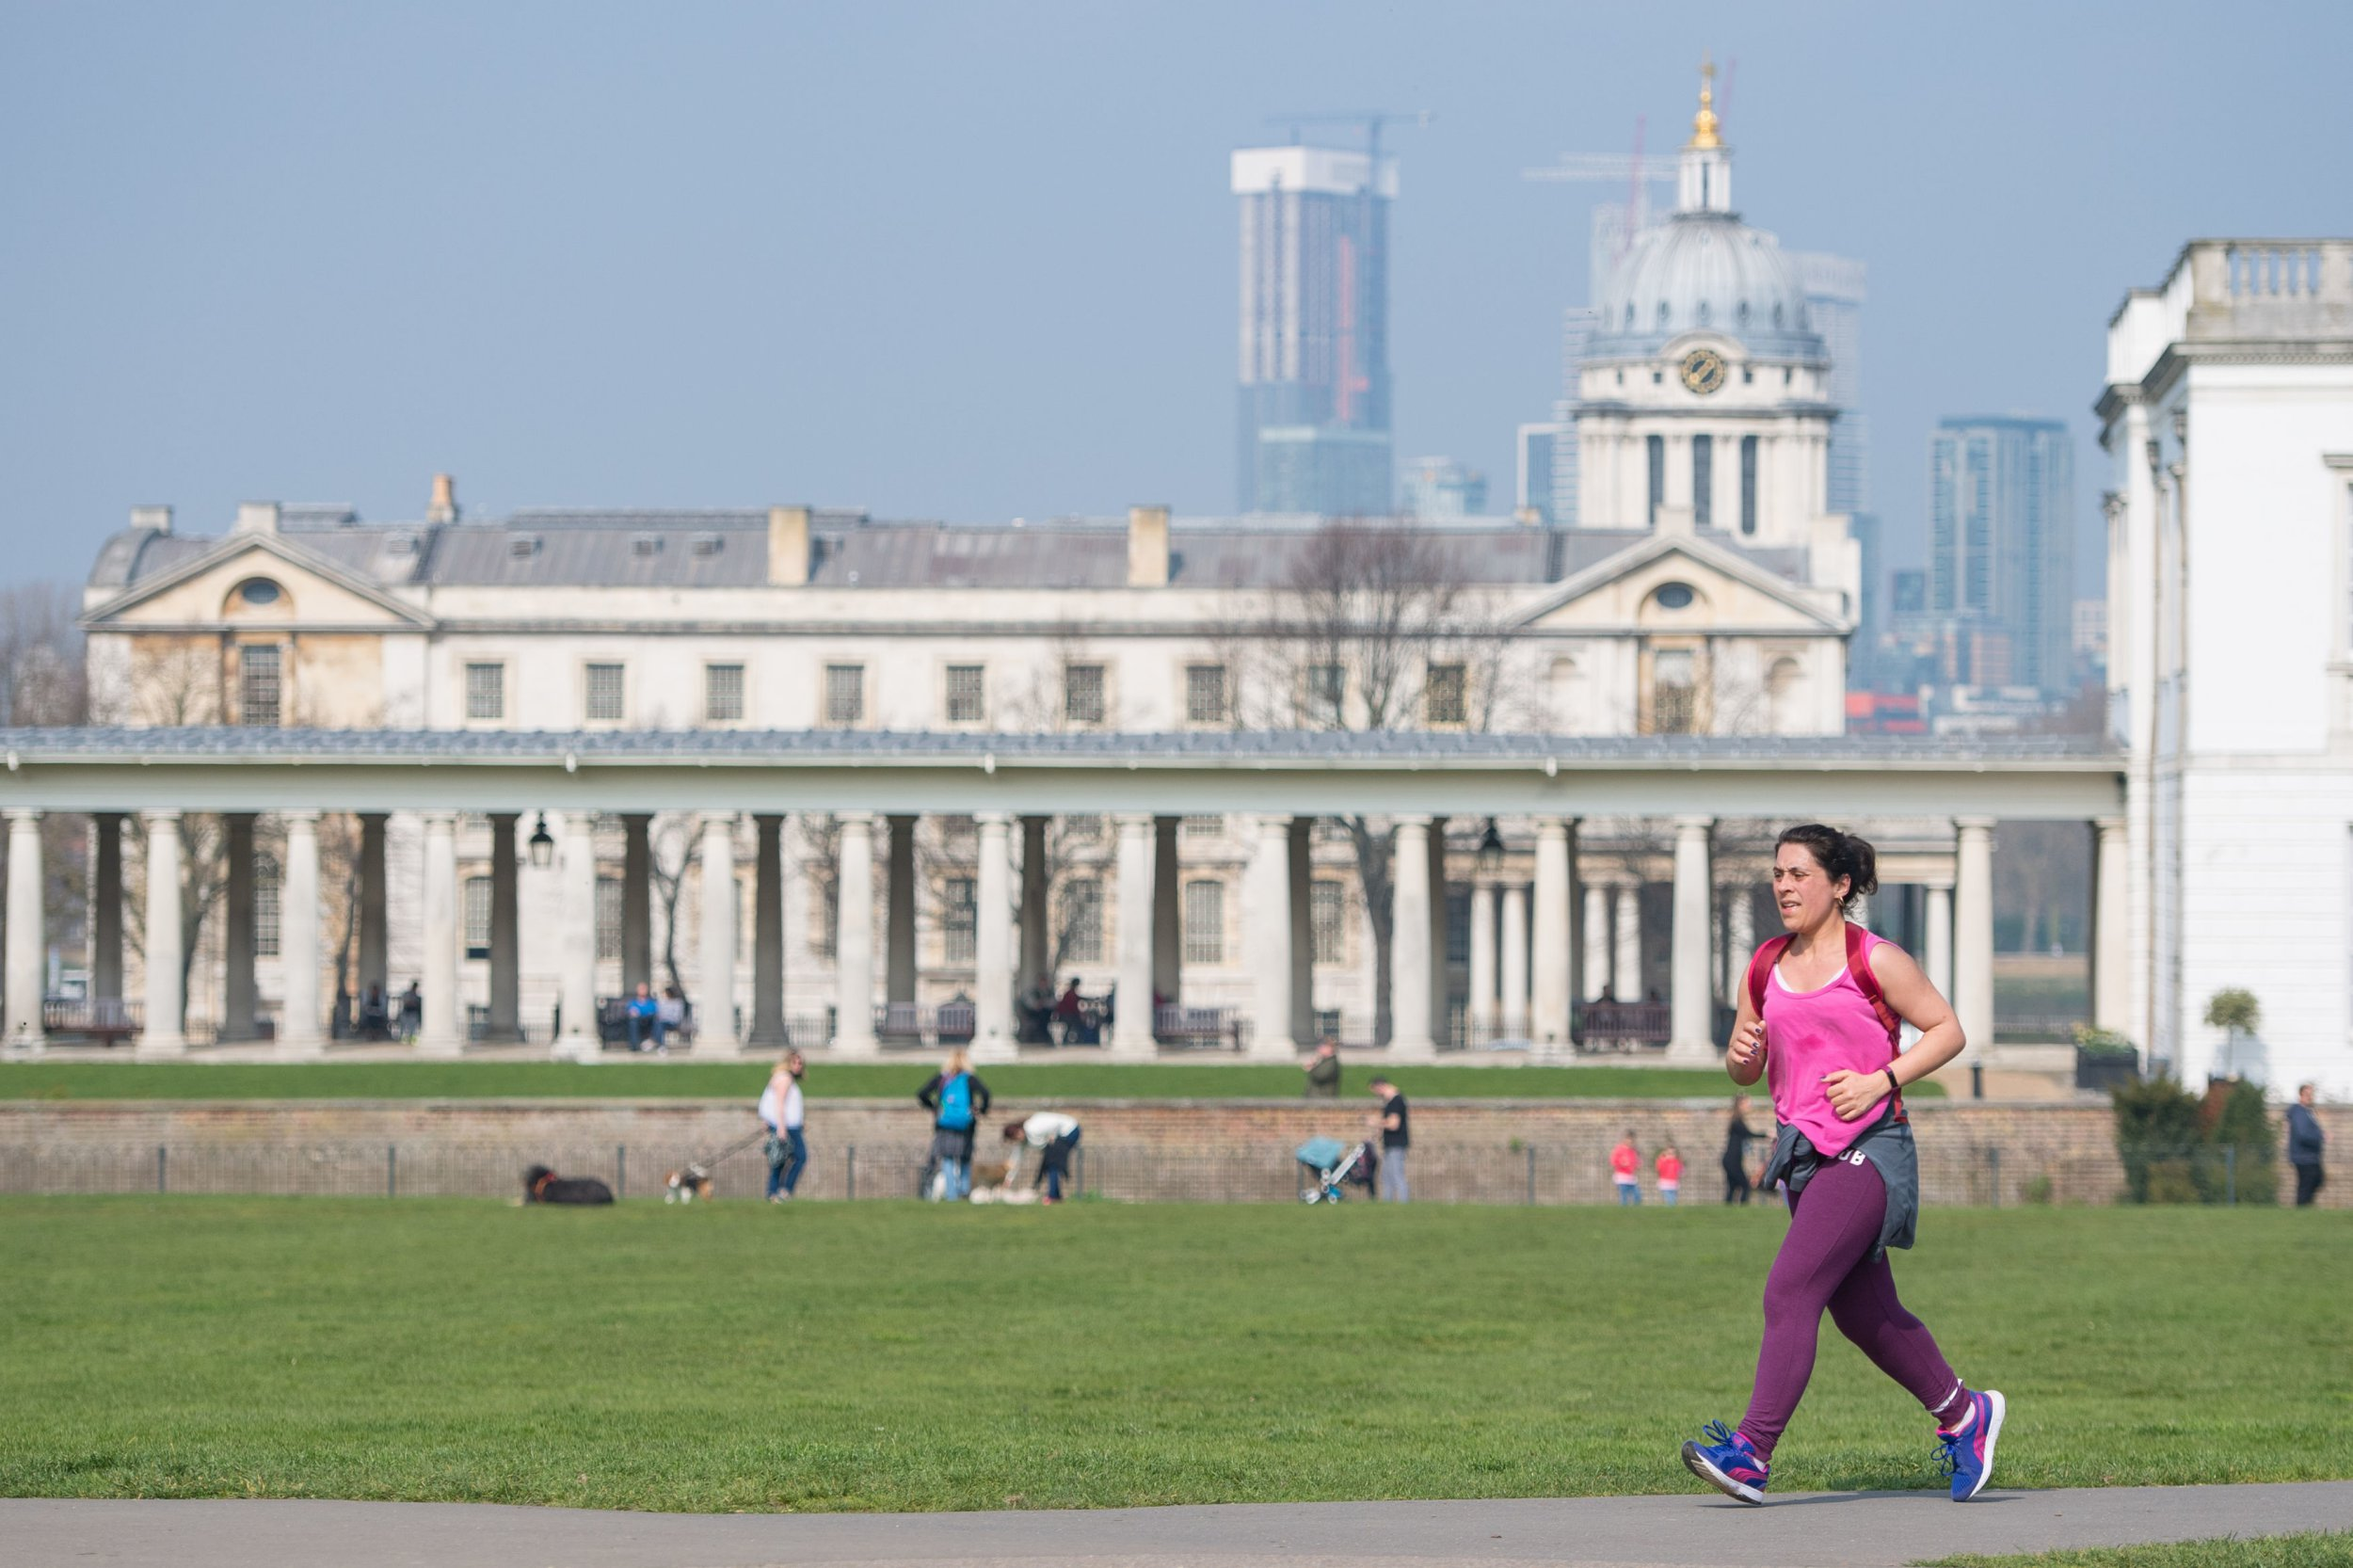 A runner passes the Old Naval College in Greenwich Park, London, as people enjoy a day of warm weather. PRESS ASSOCIATION Photo. Picture date: Saturday March 30, 2019. Photo credit should read: Dominic Lipinski/PA Wire